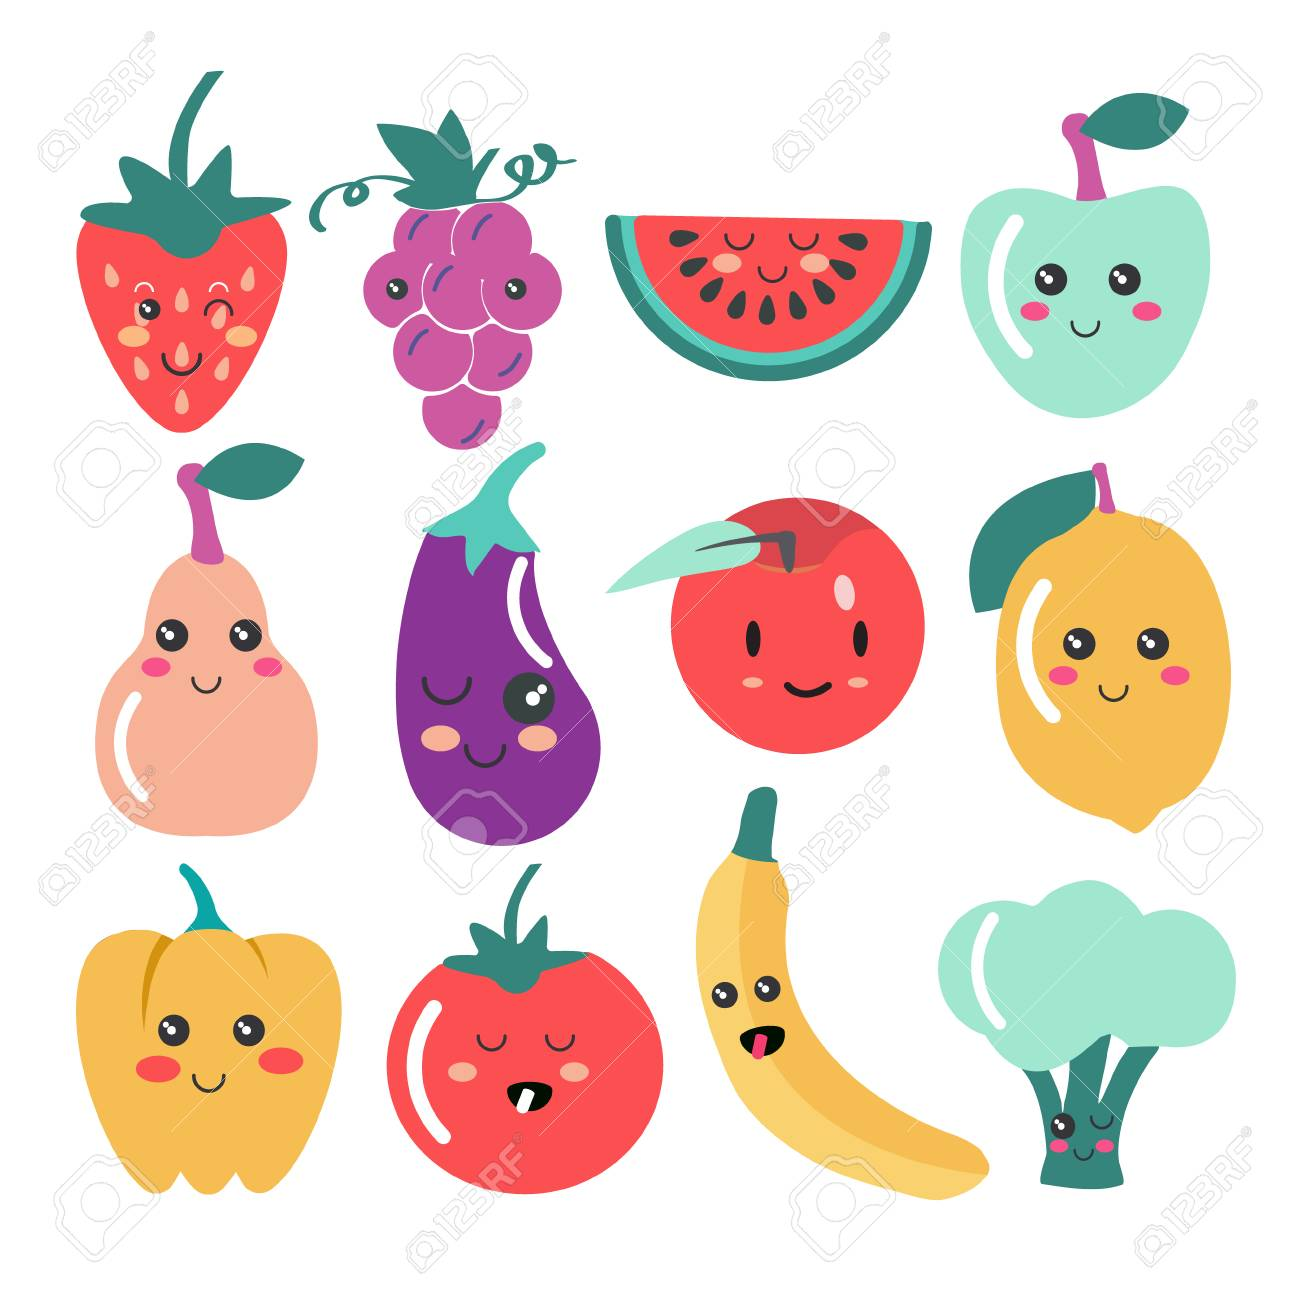 Cute Kawaii Fruit And Vegetable Icons Vector Set Of Cute Fruit Royalty Free Cliparts Vectors And Stock Illustration Image 106360227